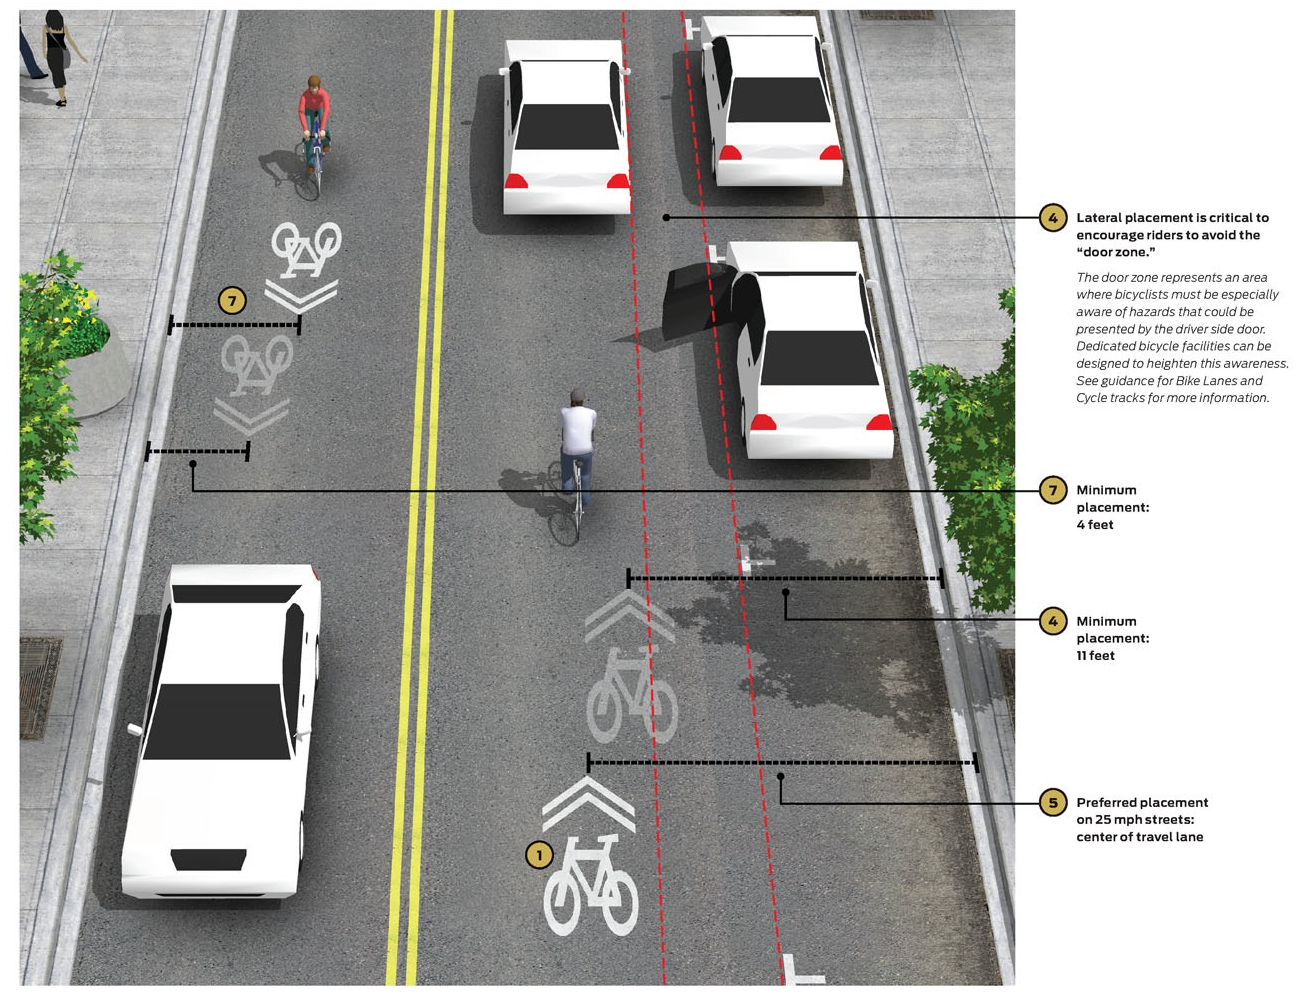 This image from the National Association of City Transportation Officials Guide (the New Testament for traffic engineers), illustrates both minimum and preferred placement options for shared lane pavement markings next to parking lanes and in curb lanes.